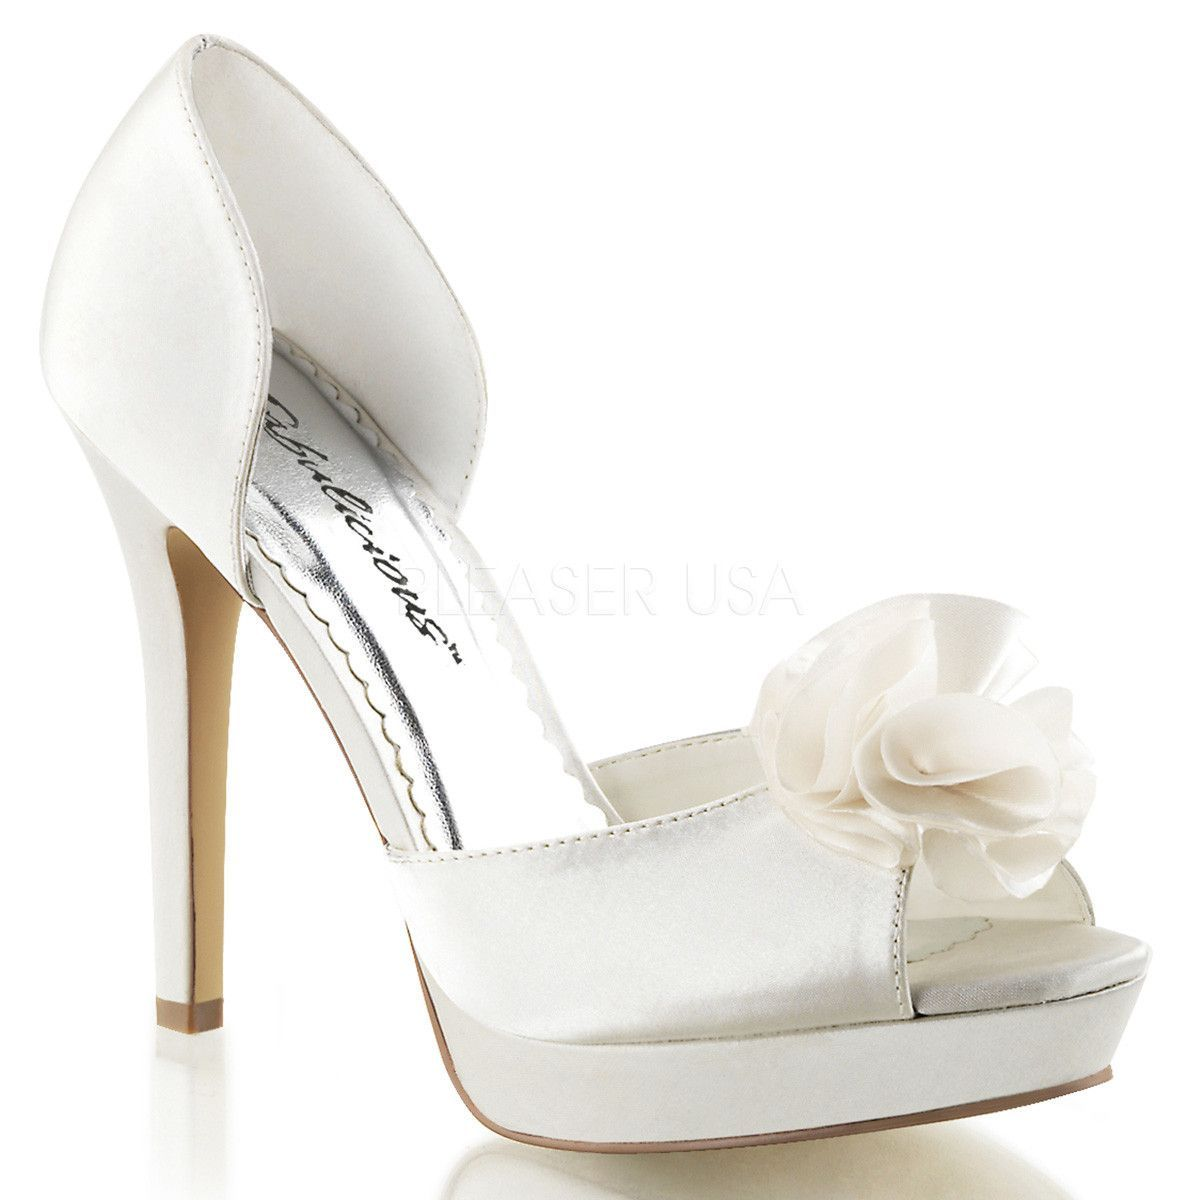 FABULICIOUS 34 LUMINA 34 FABULICIOUS Ivory Satin Peep Toe Pumps   beautiful lady's ... 6e2d42